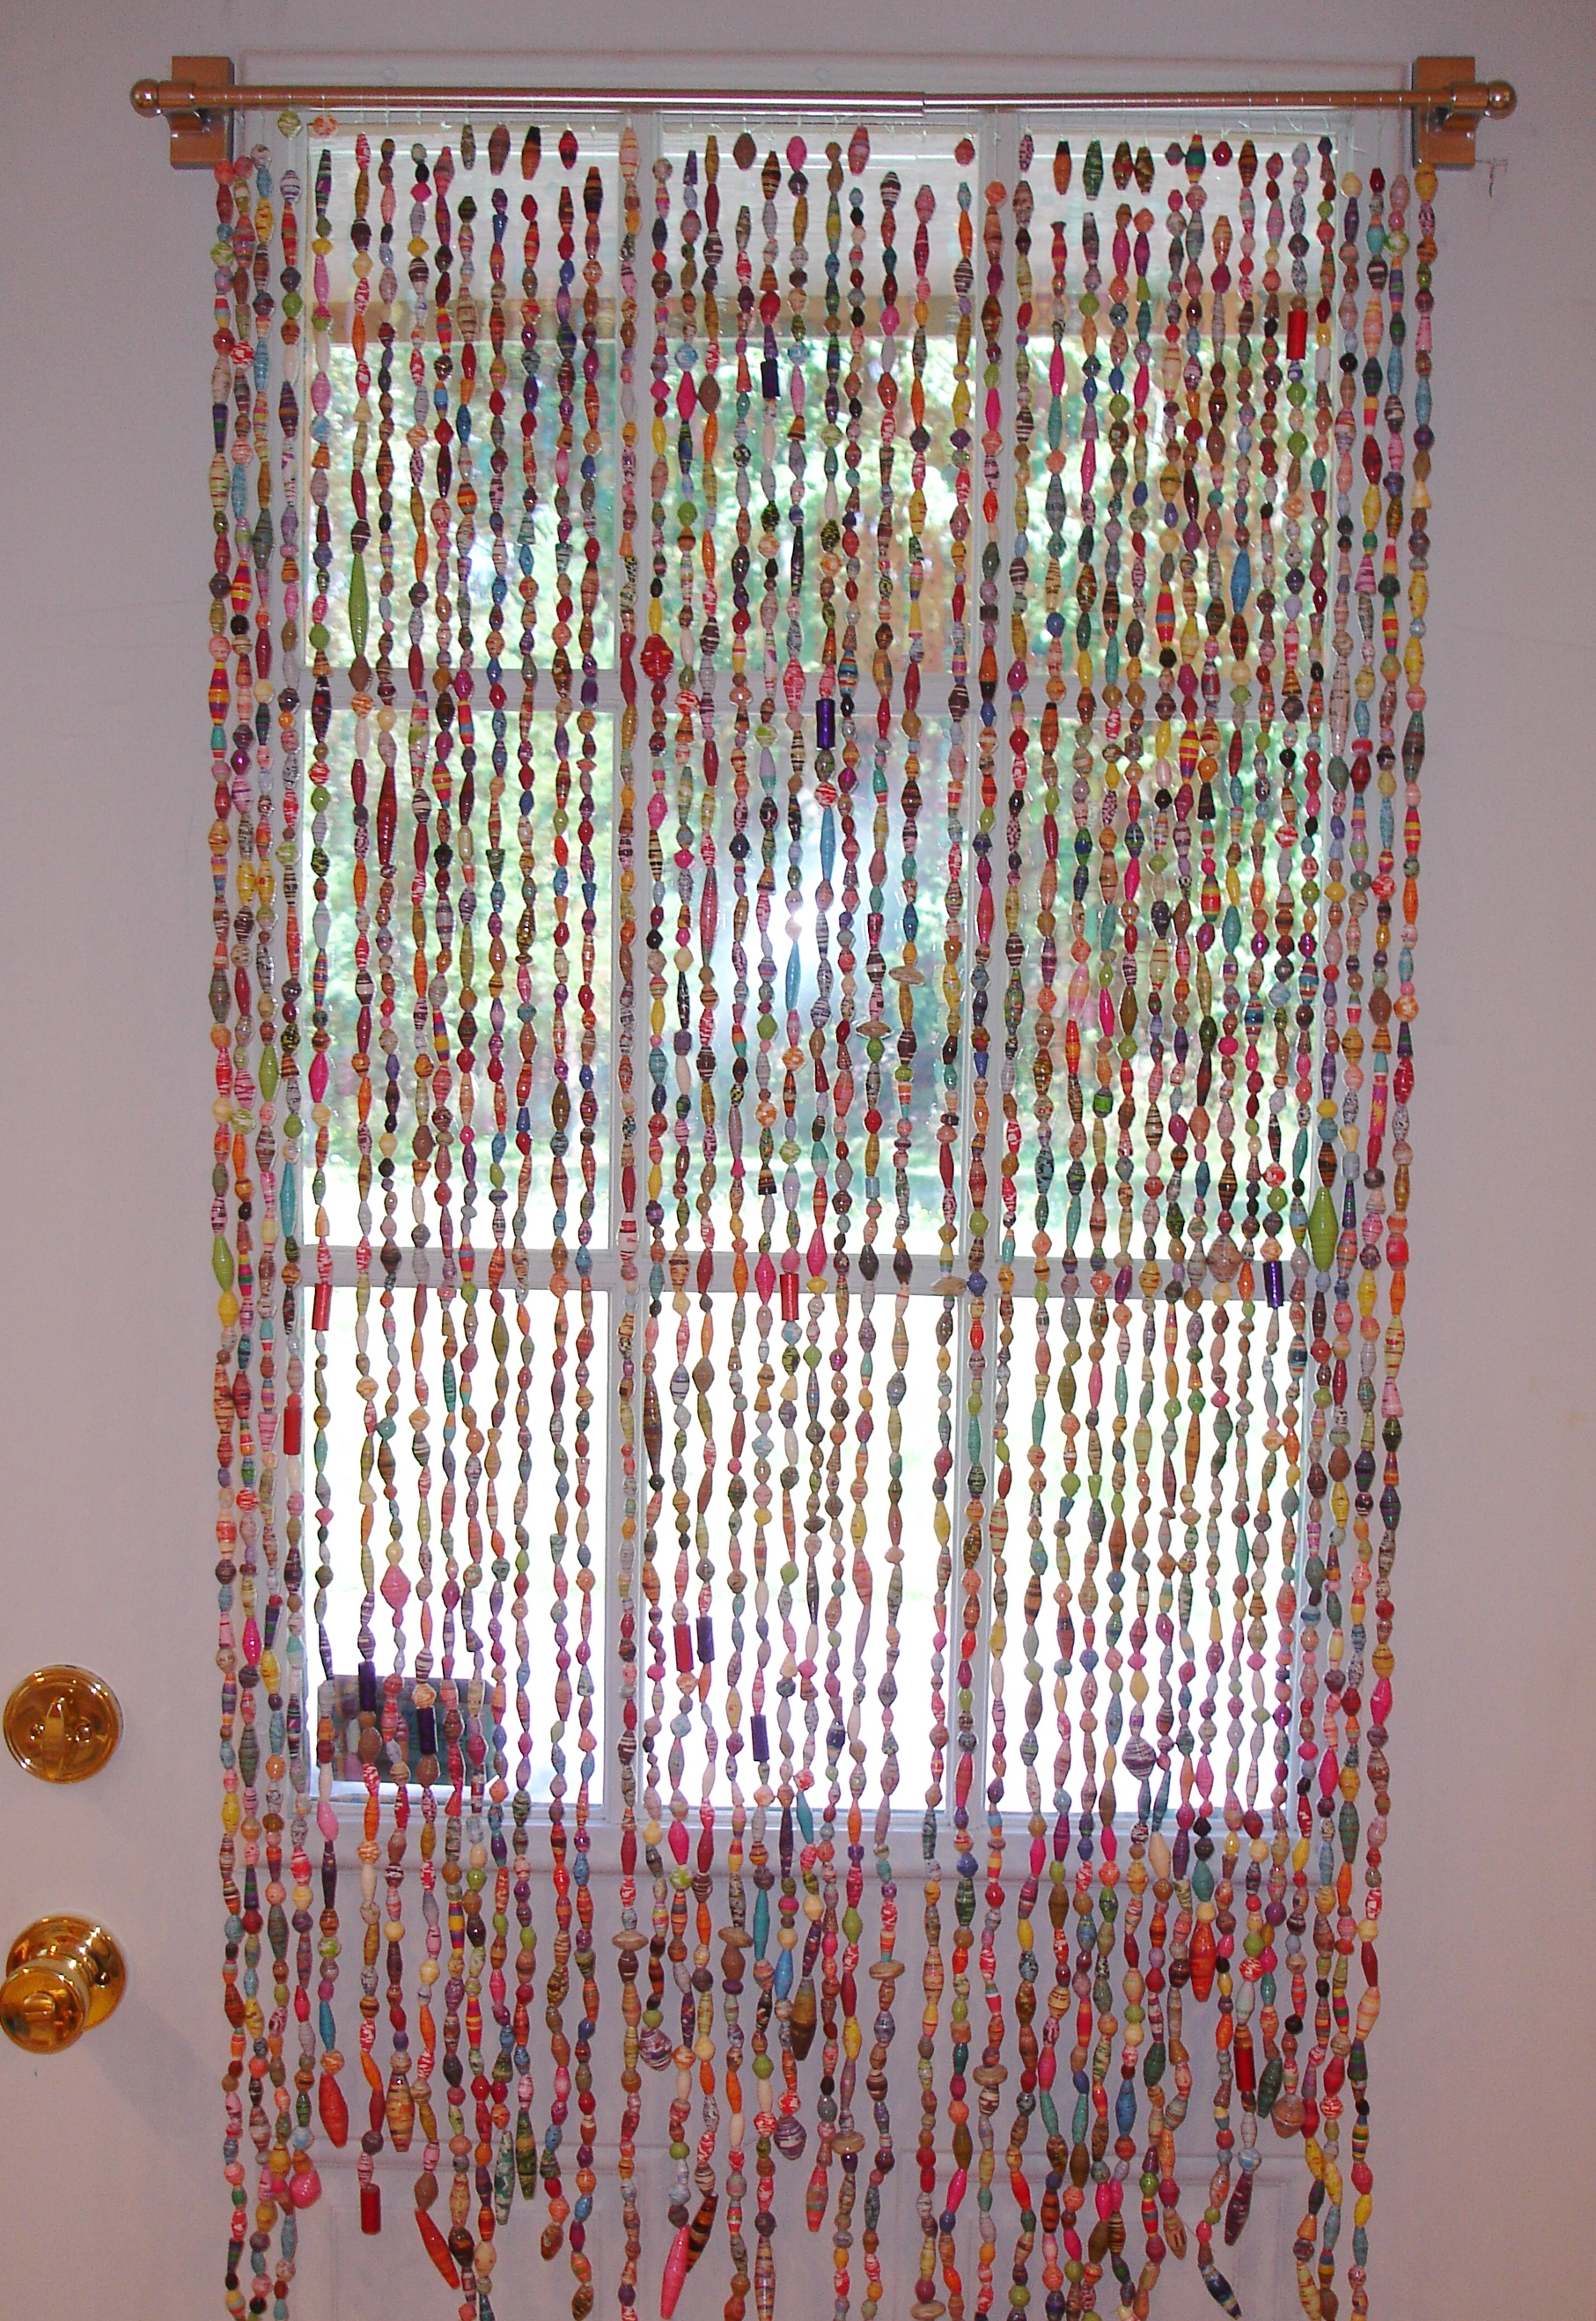 I Am Proud To Say Have FINALLY Finished My Paper Bead Curtain Been Working On This Project Since Last Fall Almost A Year Now